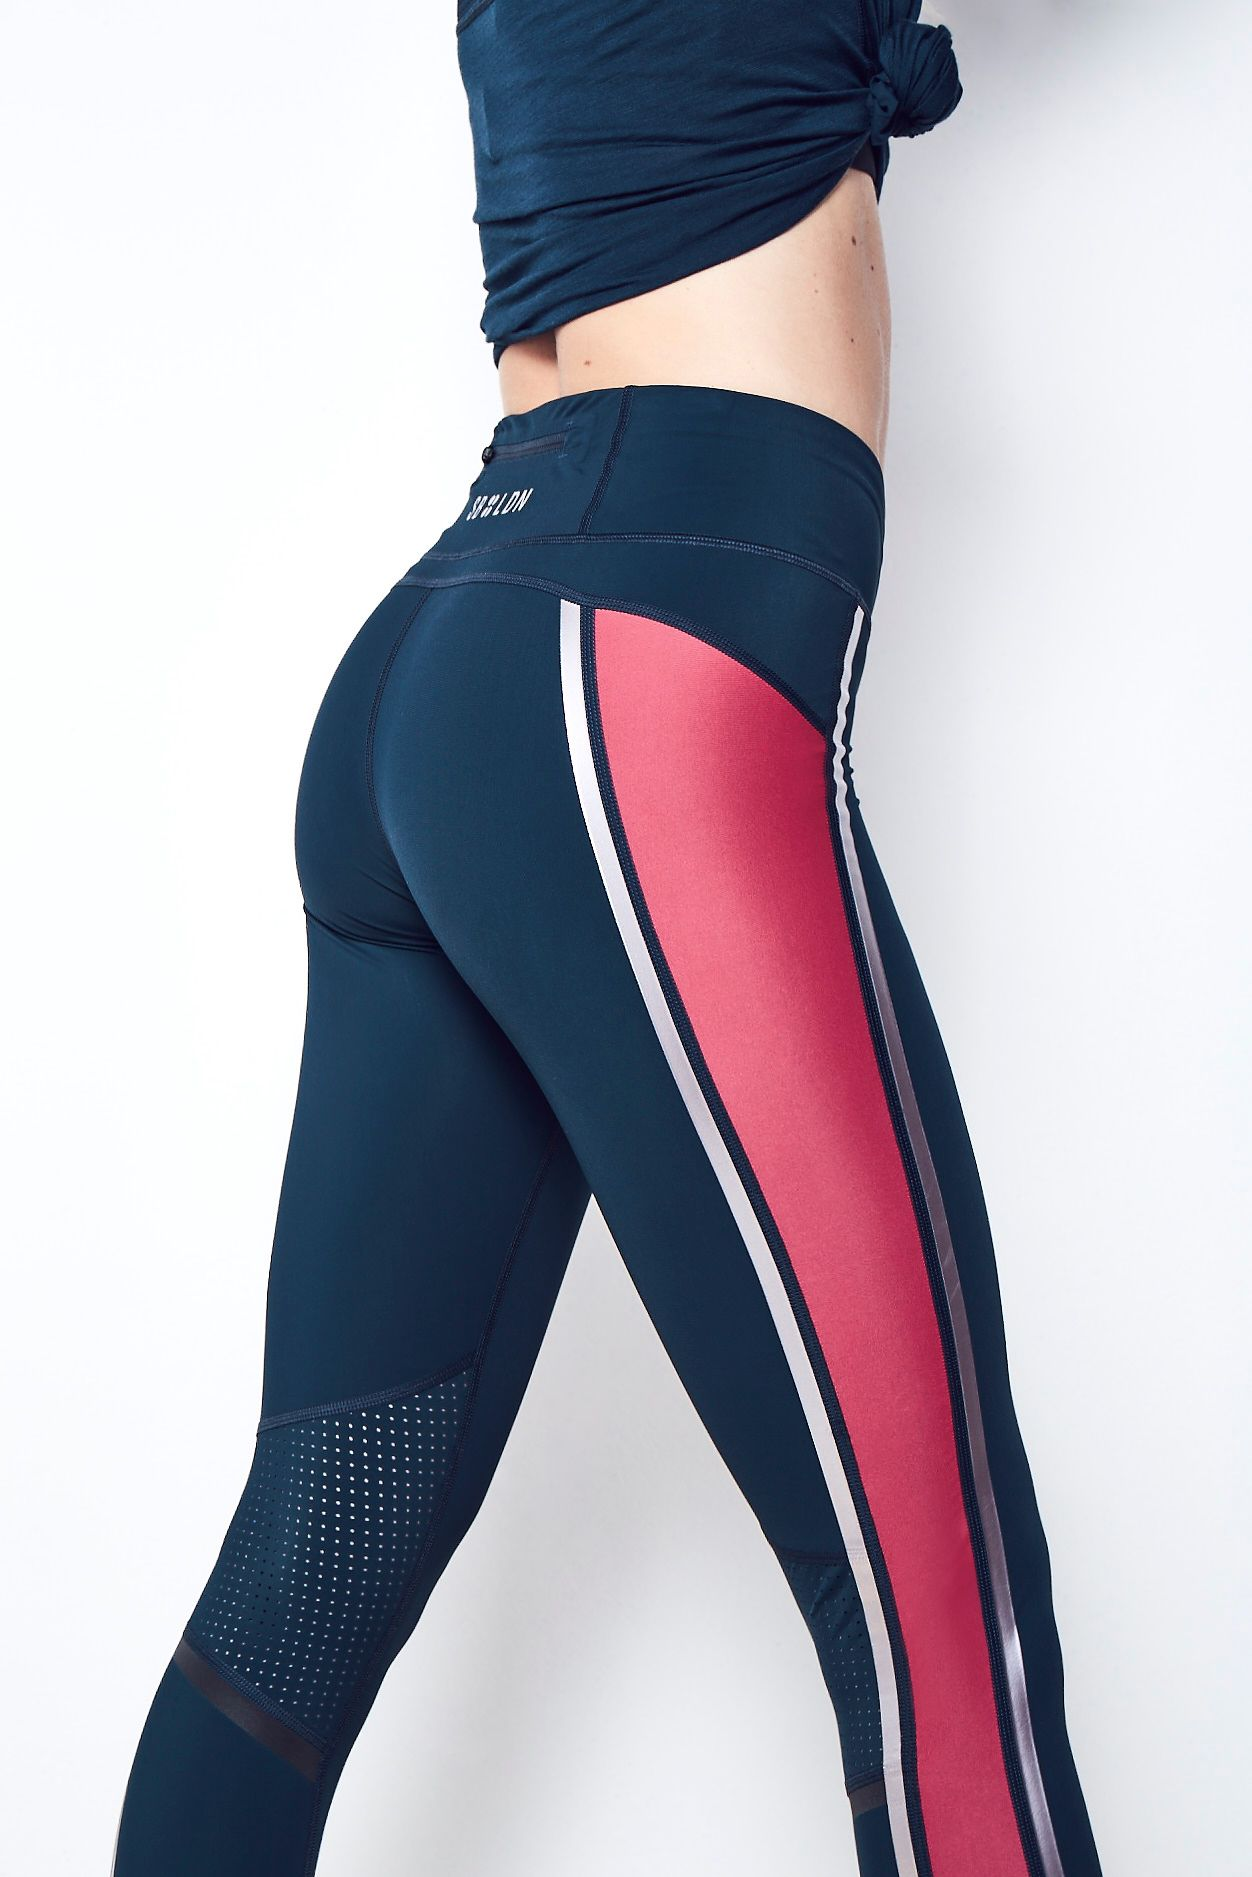 76219c1f7dbfe Meet the Zero Gravity Leggings in colour block with the perfect mix of  compression and stretch to sculpt your bum and legs.  sweatybetty ...